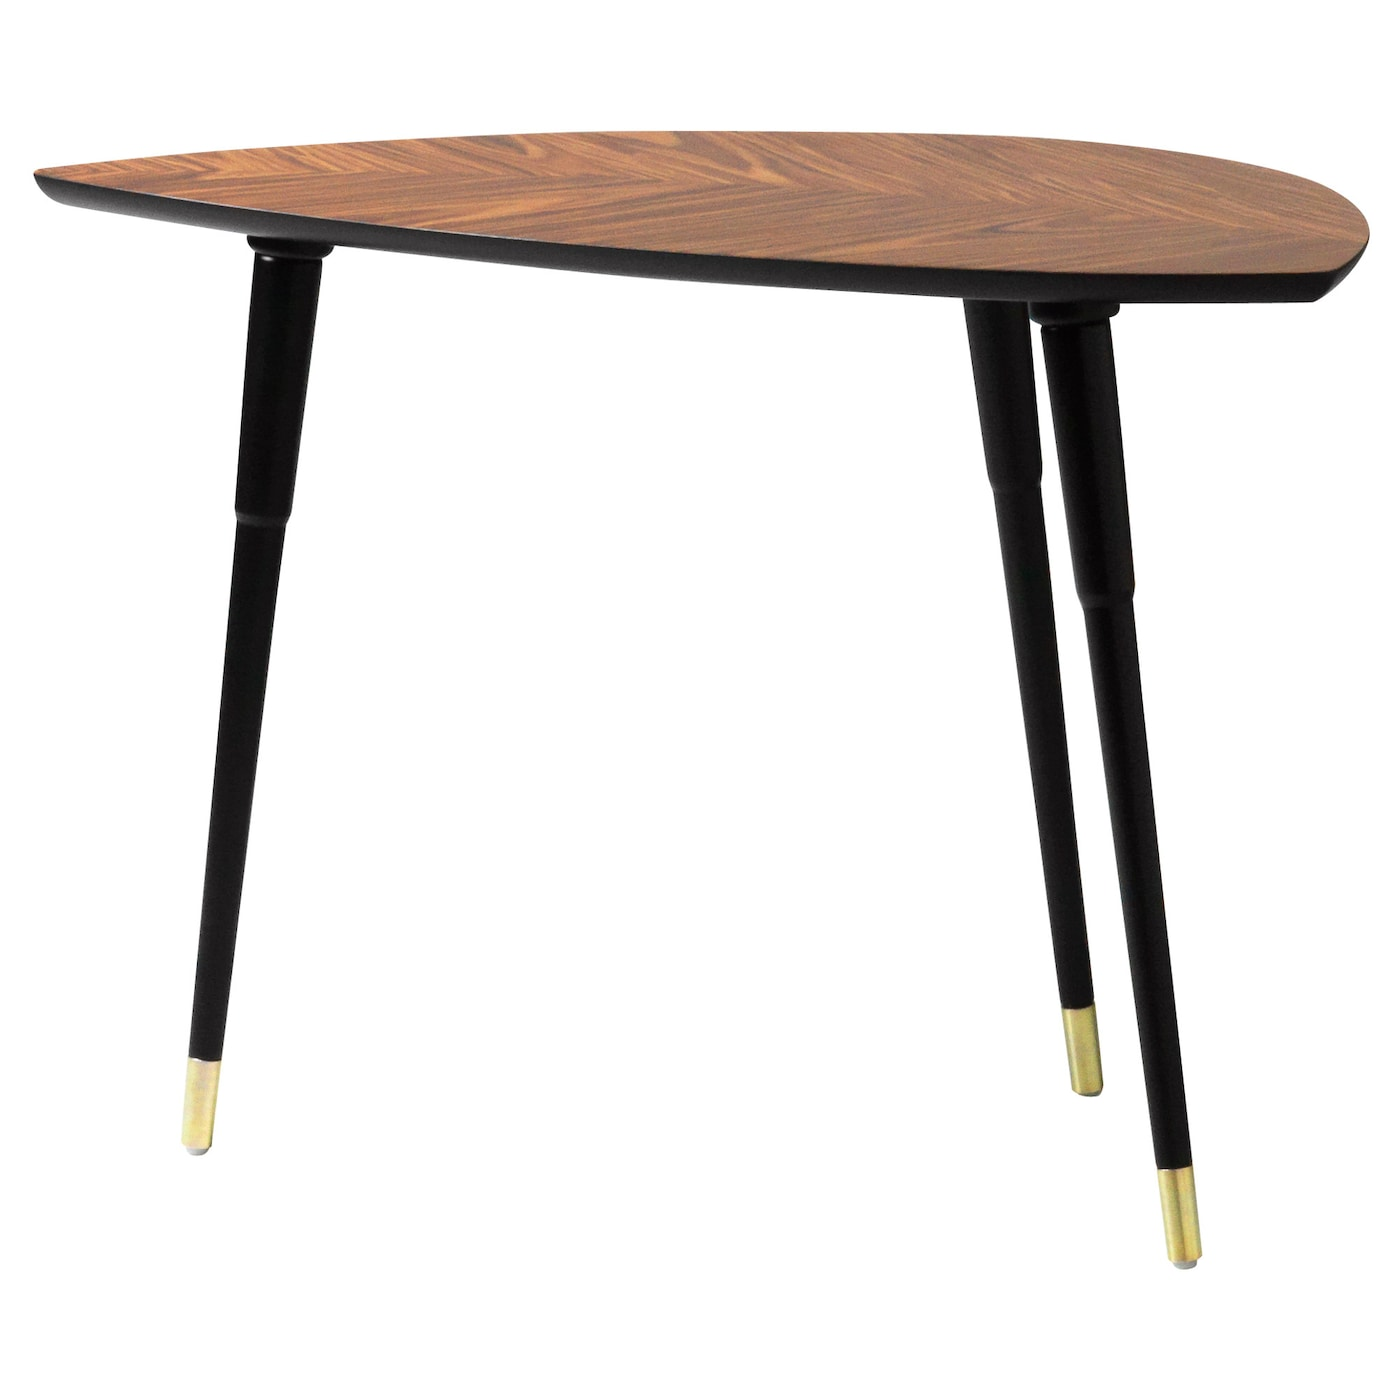 Ikea LÖvbacken Side Table The Veneered Surface Is Durable Stain Resistant And Easy To Keep